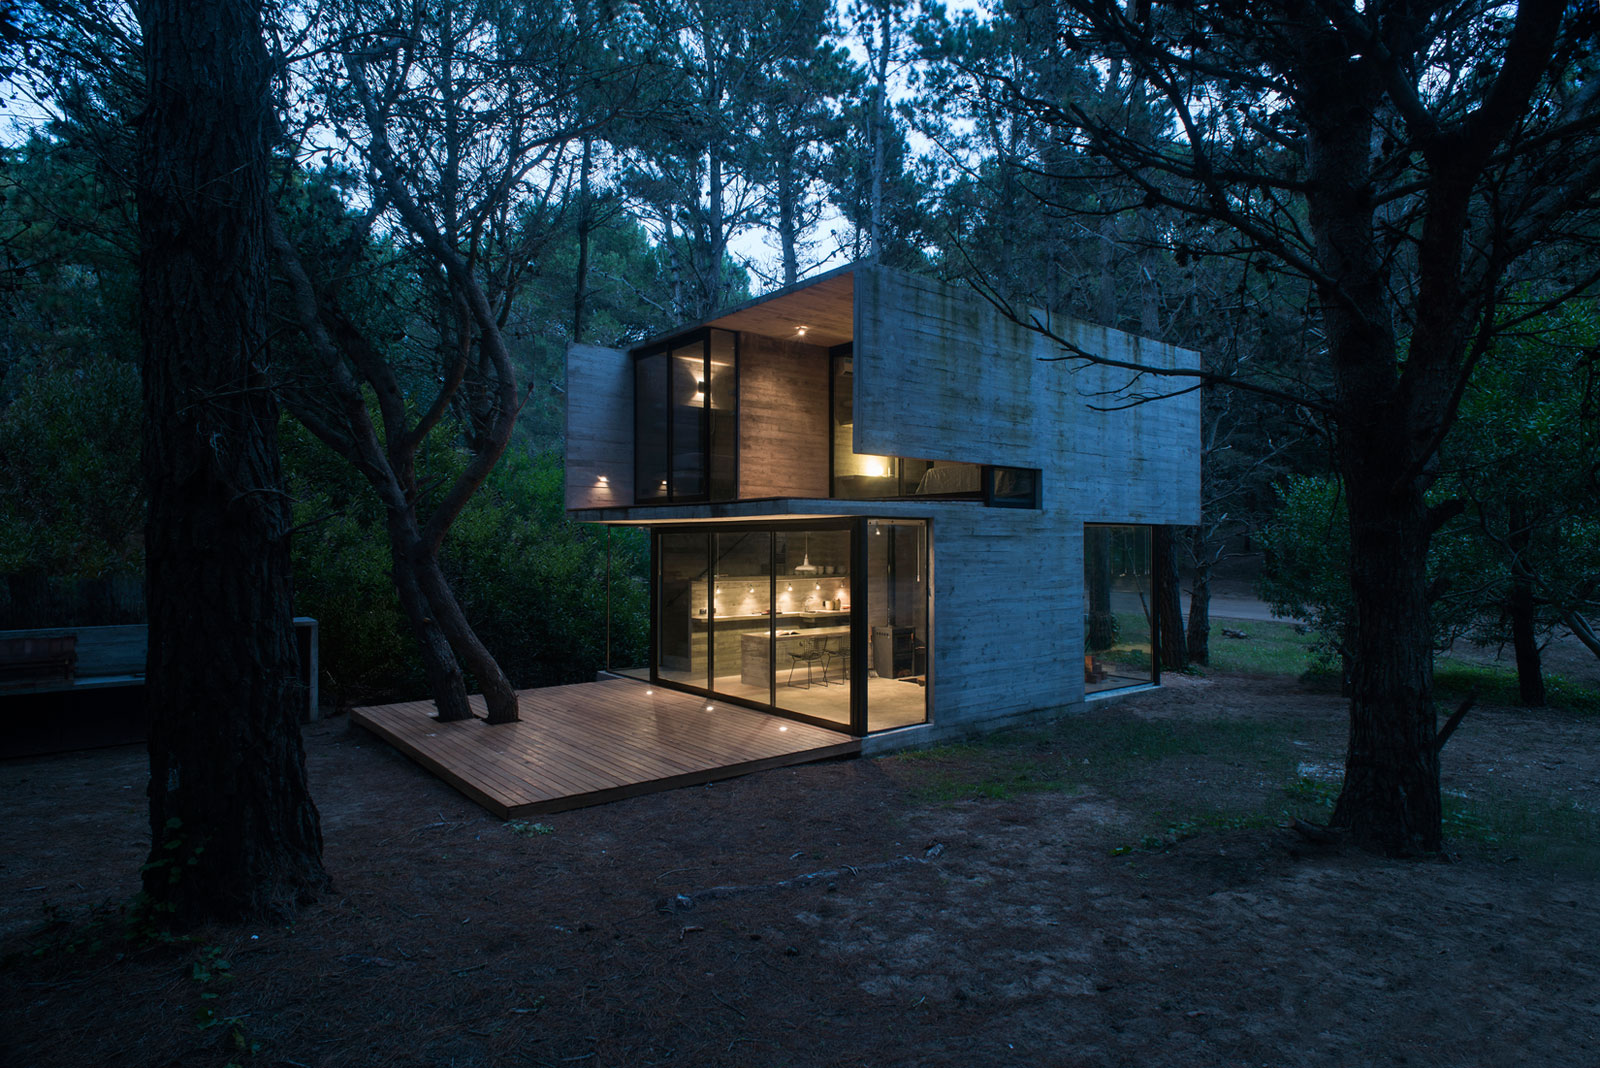 Luciano Kruk Designs a Home in the Seashore Town of Mar Azul, Argentina